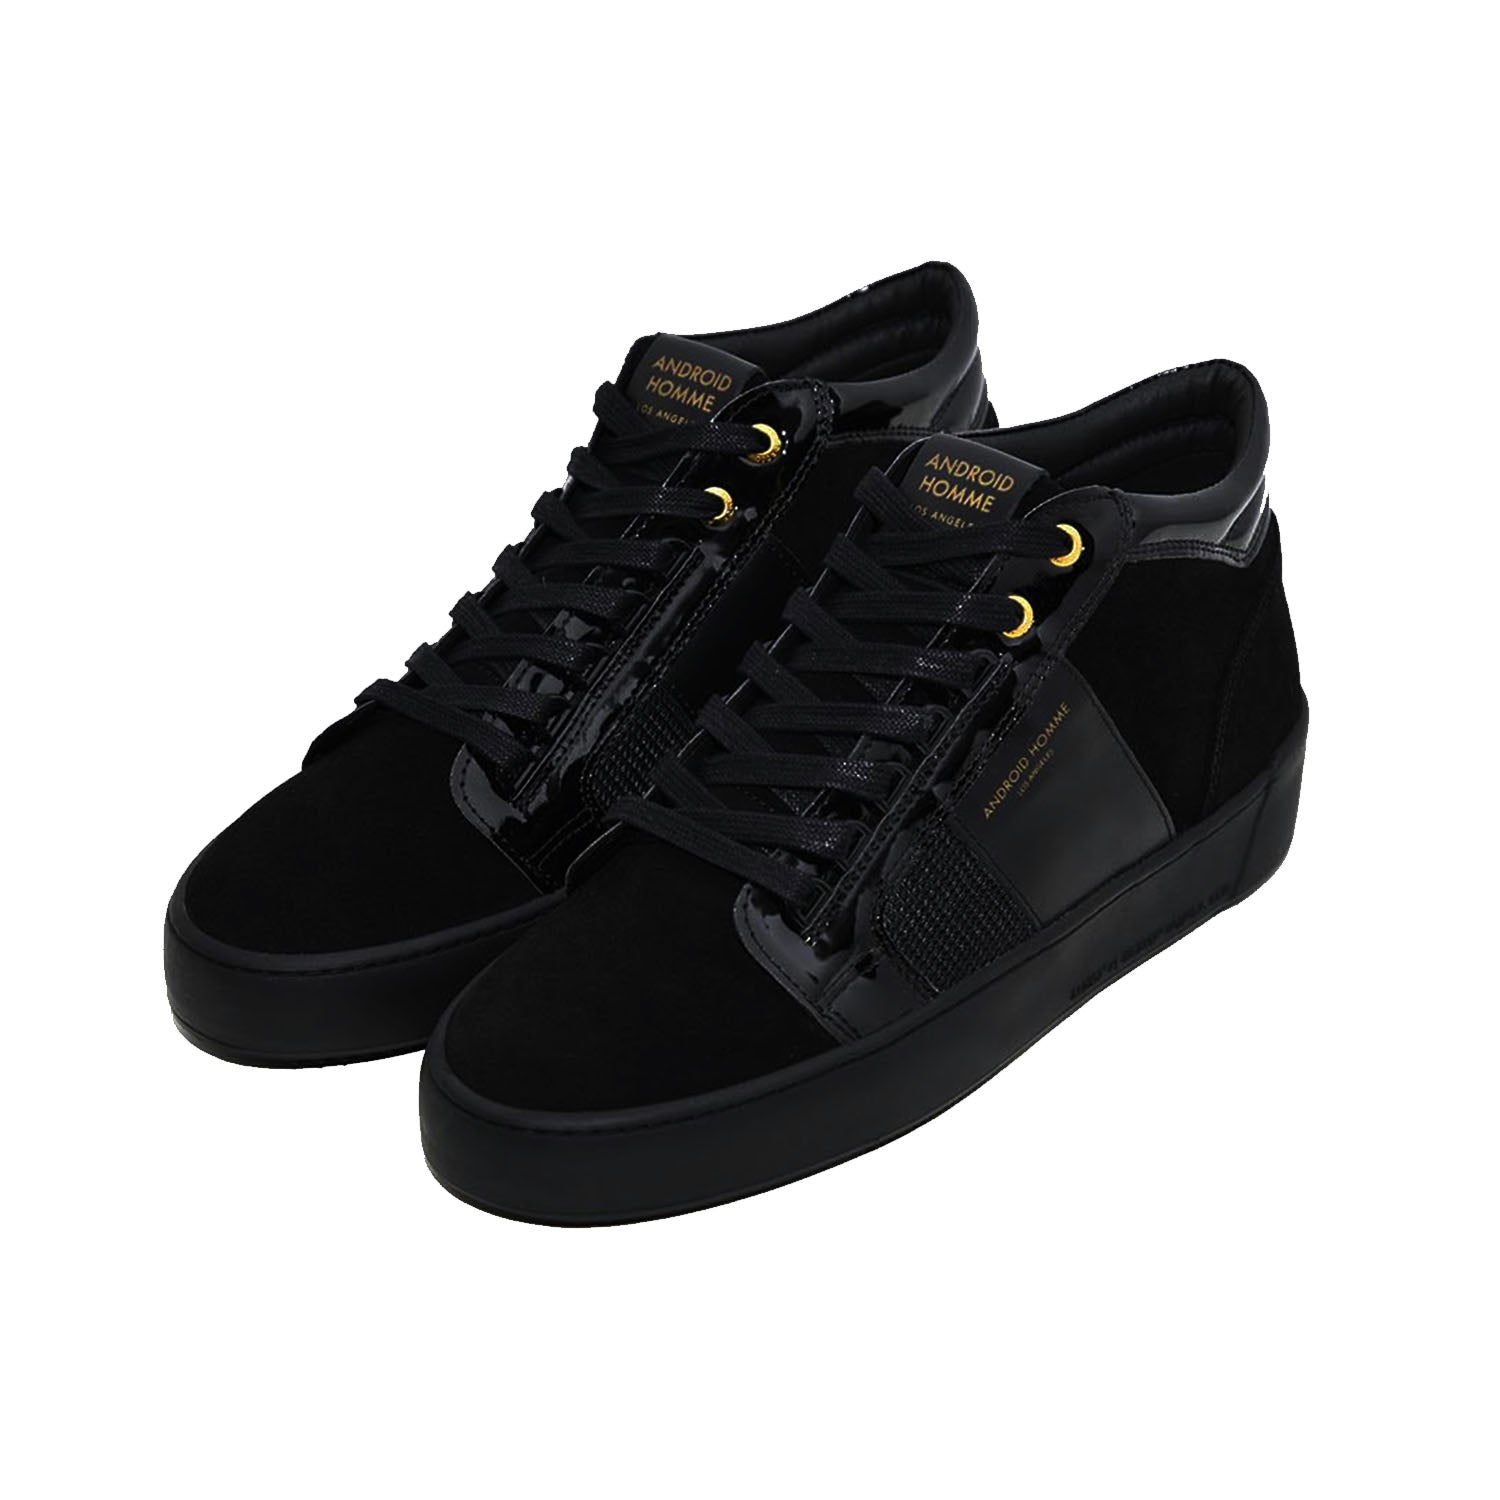 Android Homme Propulsion Mid Geo Black Patent Suede Trainer